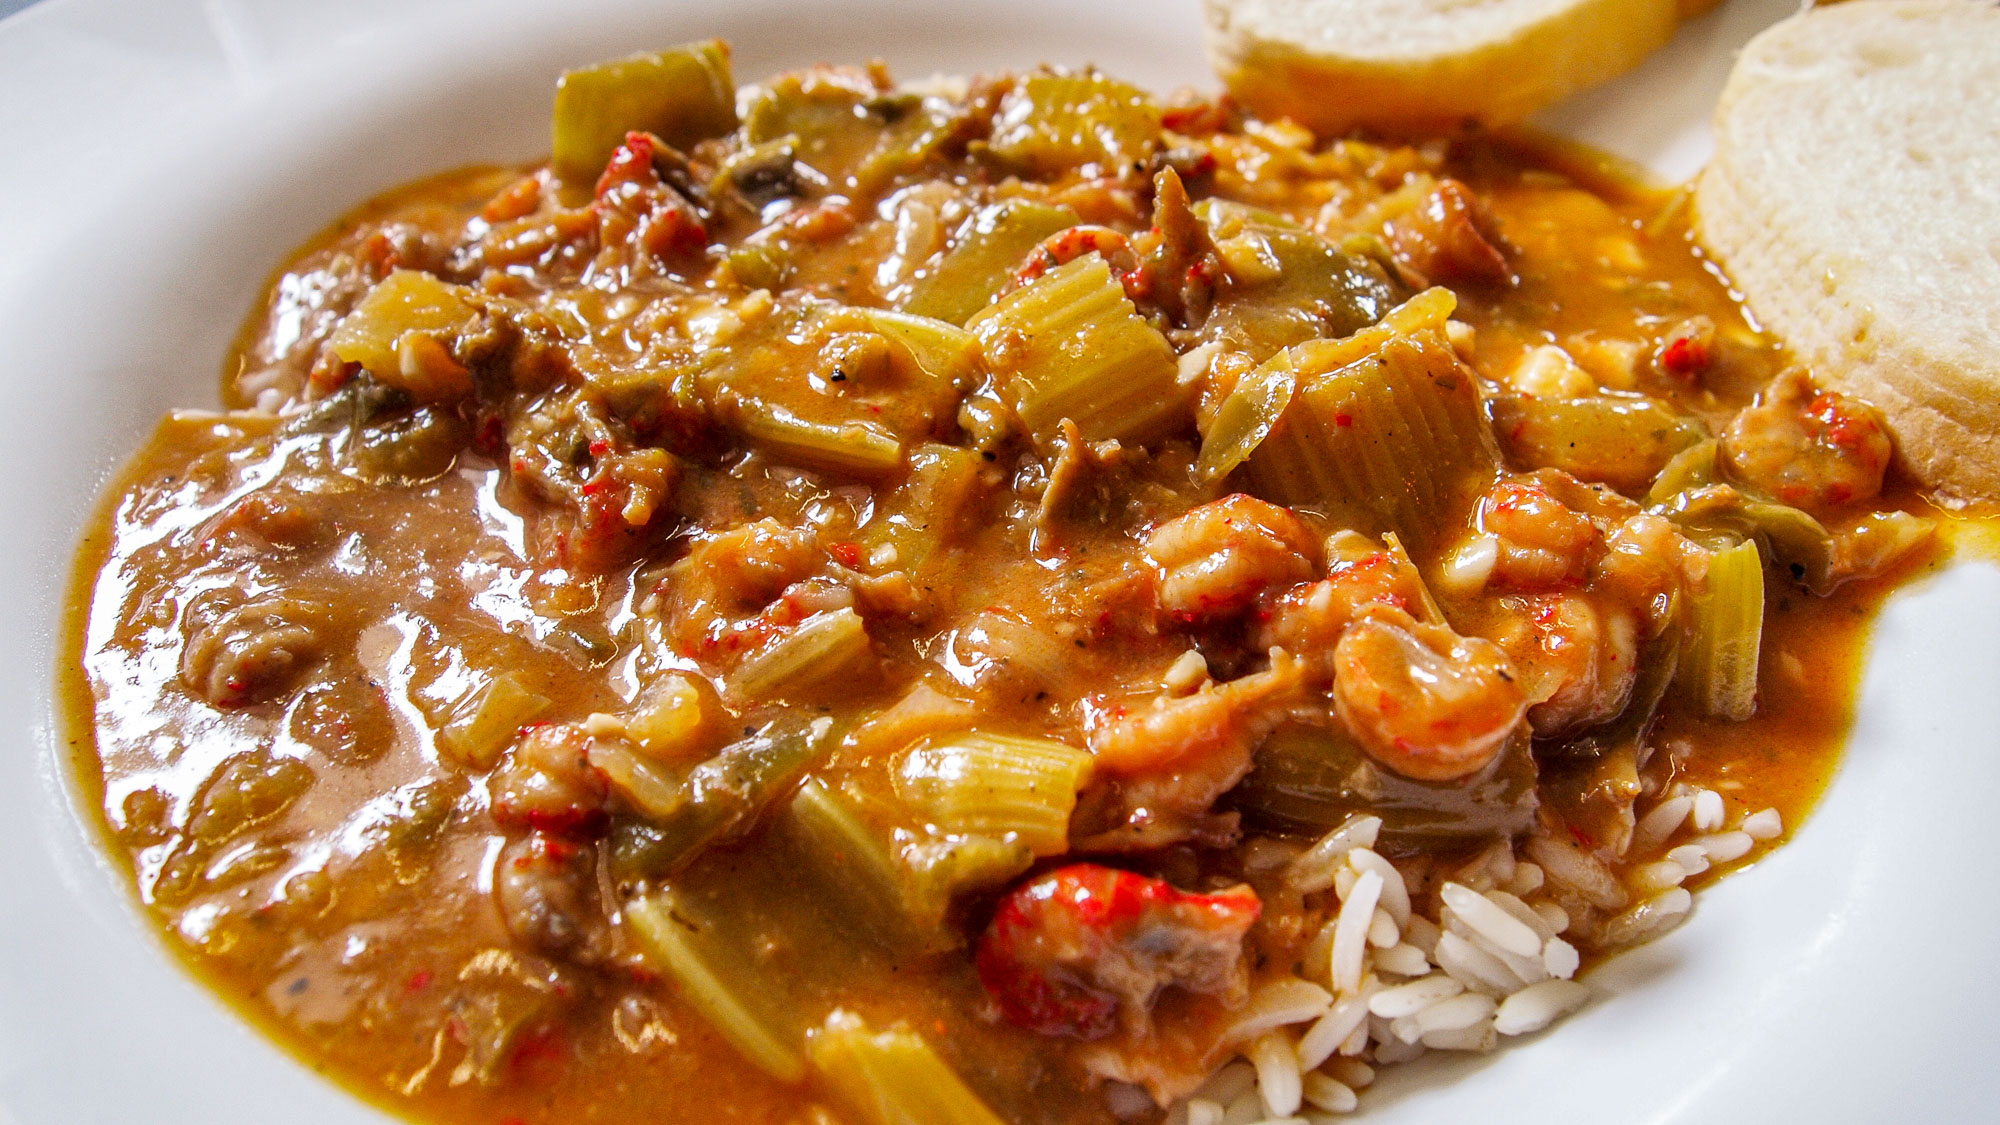 Etouffée in New Orleans